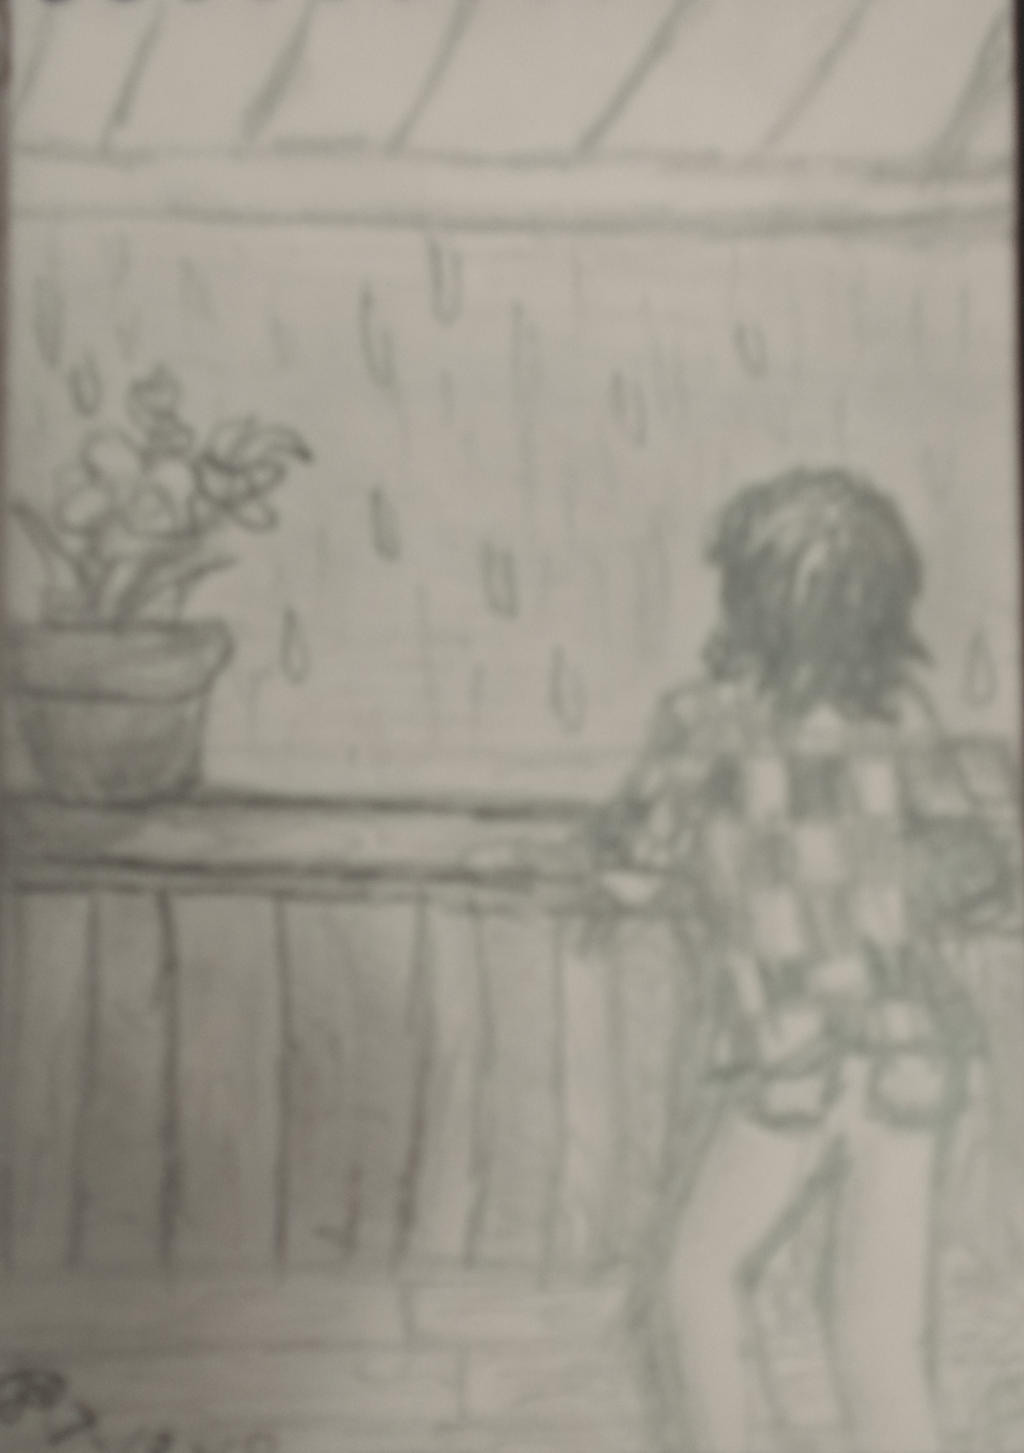 Lorayuhbluerose025 watching the rain pencil sketch by lorayuhbluerose025